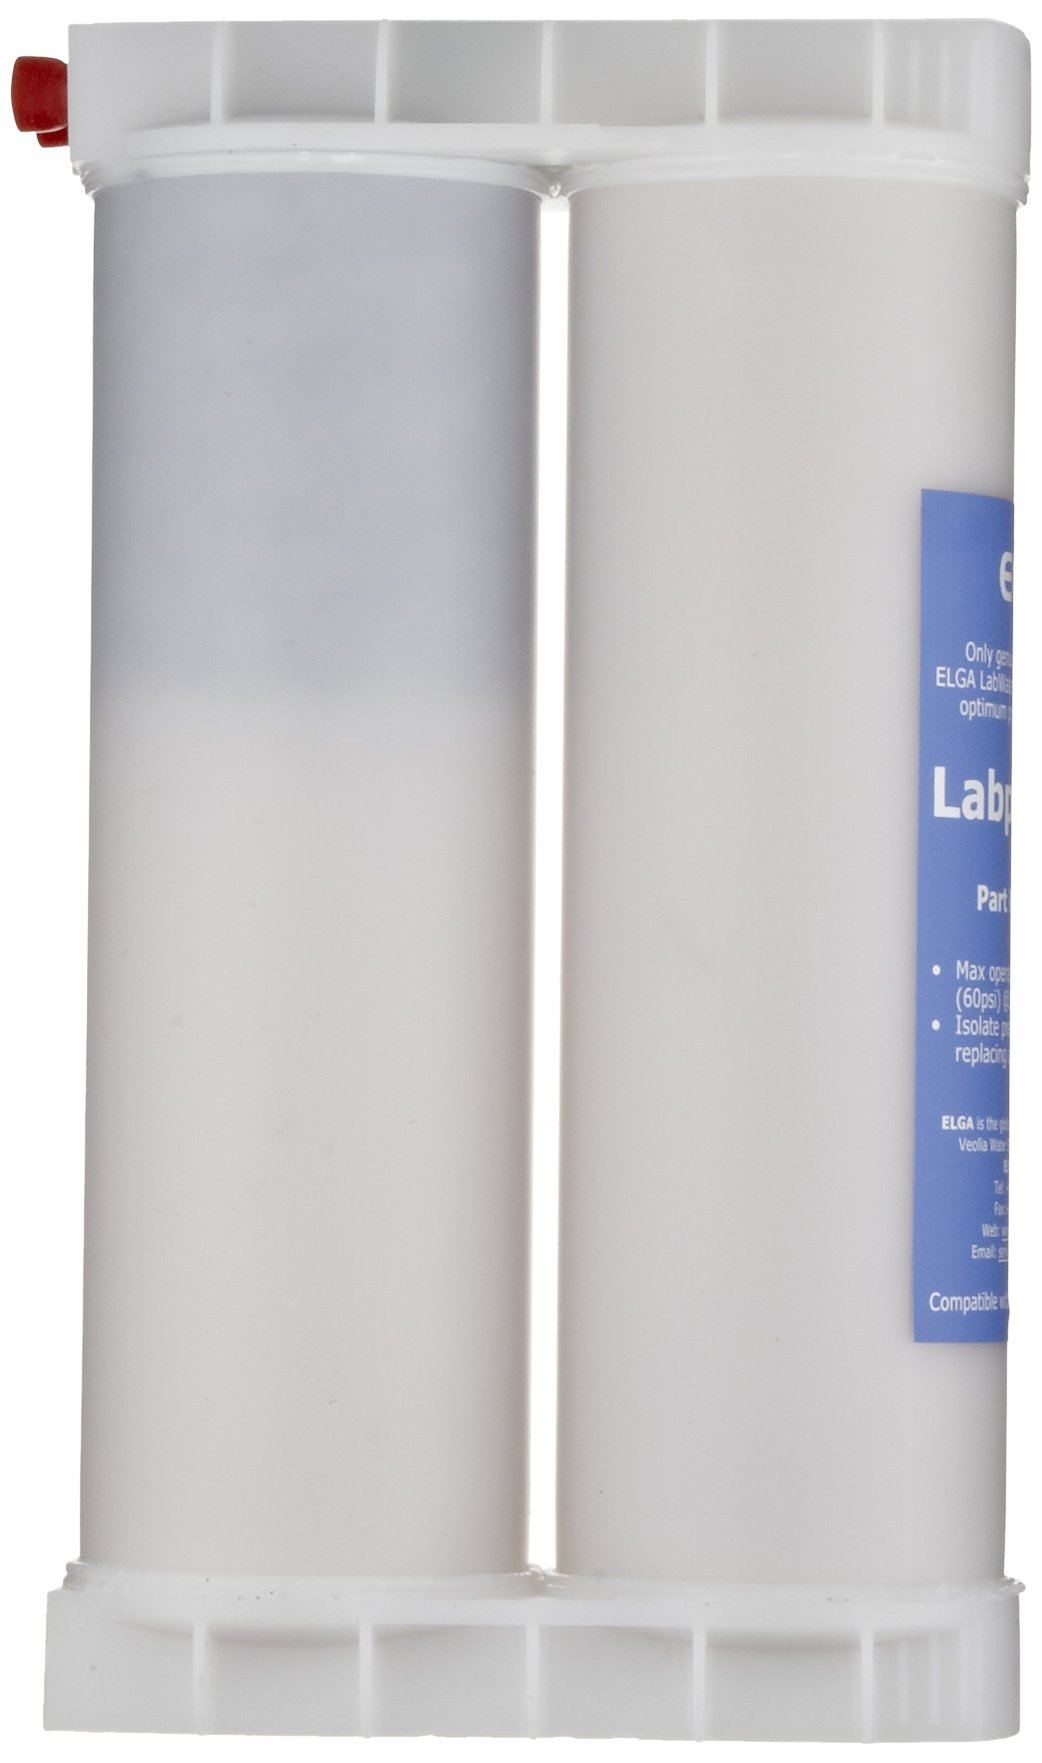 Elga LC182 Labpure S1 Purification Cartridge RO Feed, For Purelab Ultra by Elga